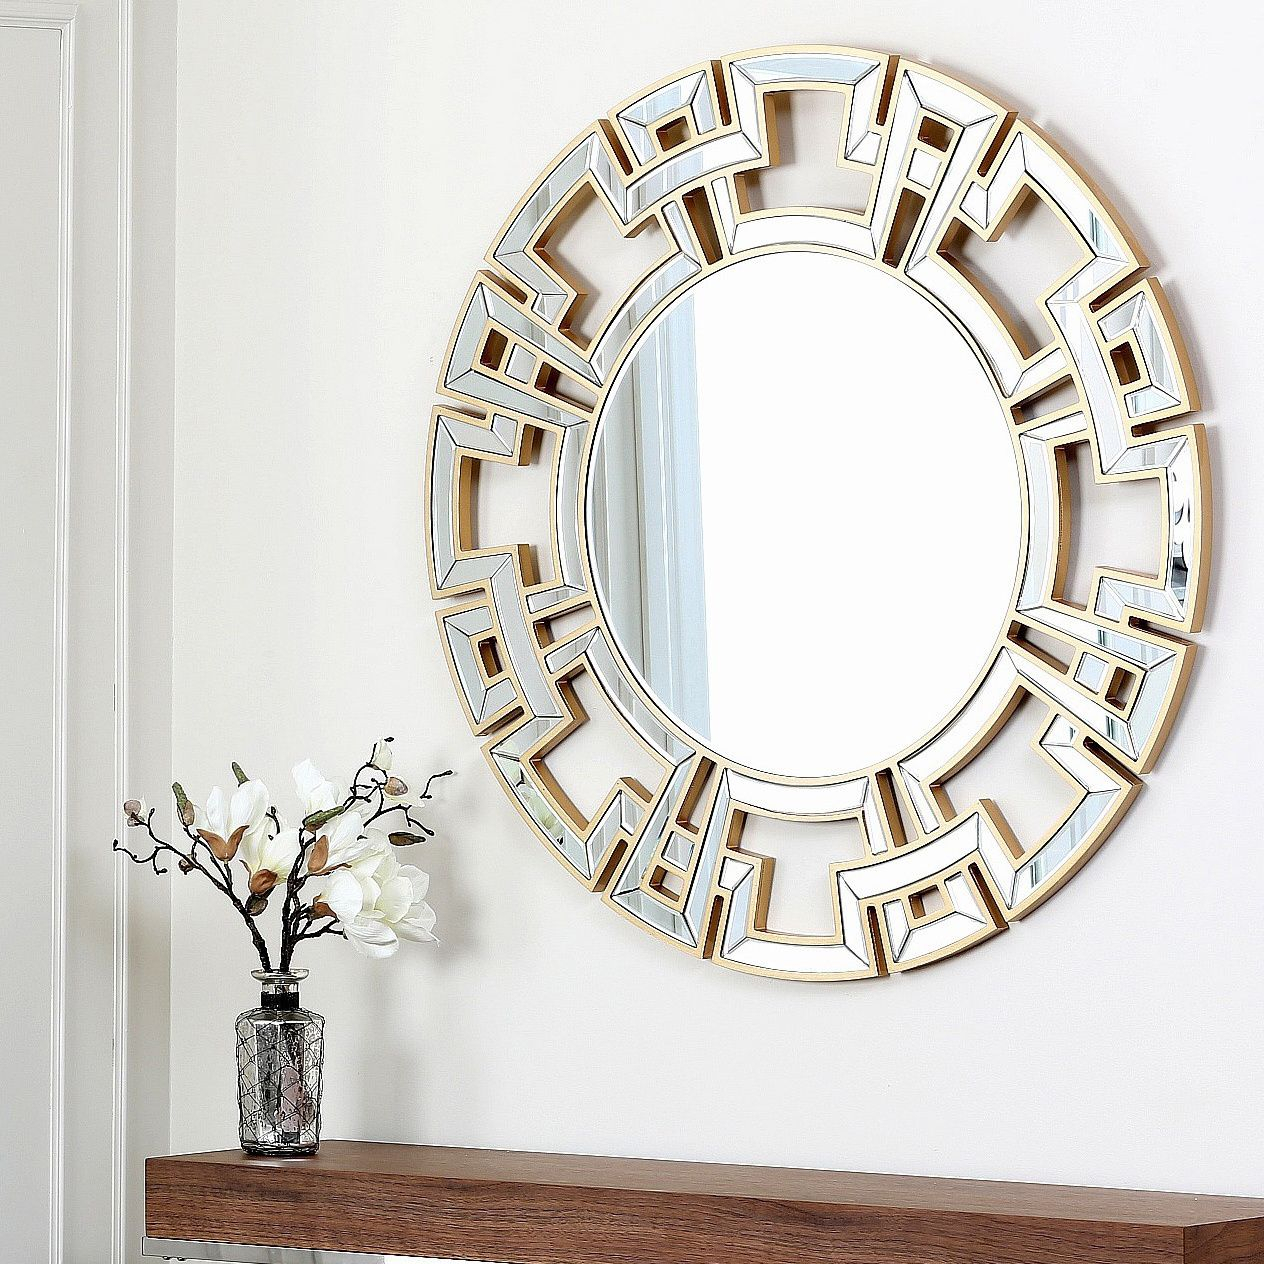 Abbyson Living Pierre Gold Round Wall Mirror – Overstock With Regard To Tata Openwork Round Wall Mirrors (View 3 of 30)